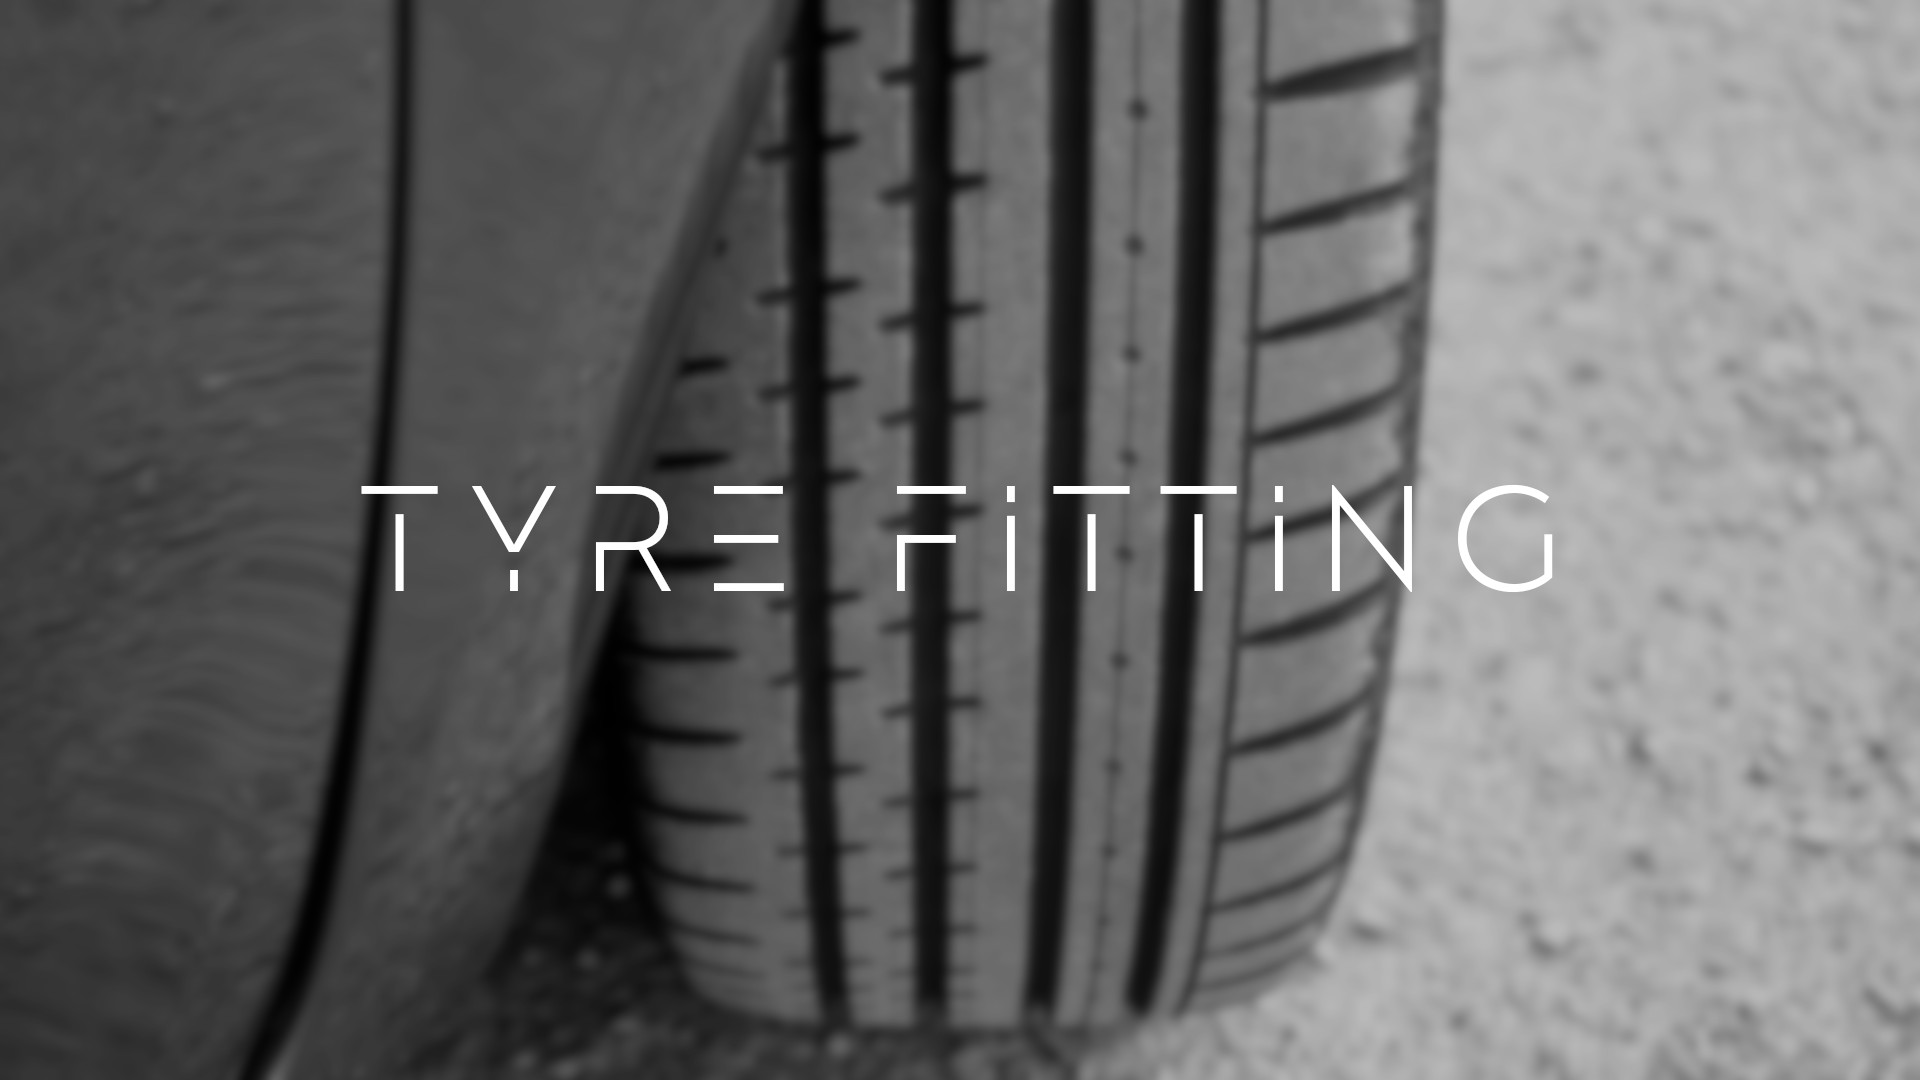 tyre fitting